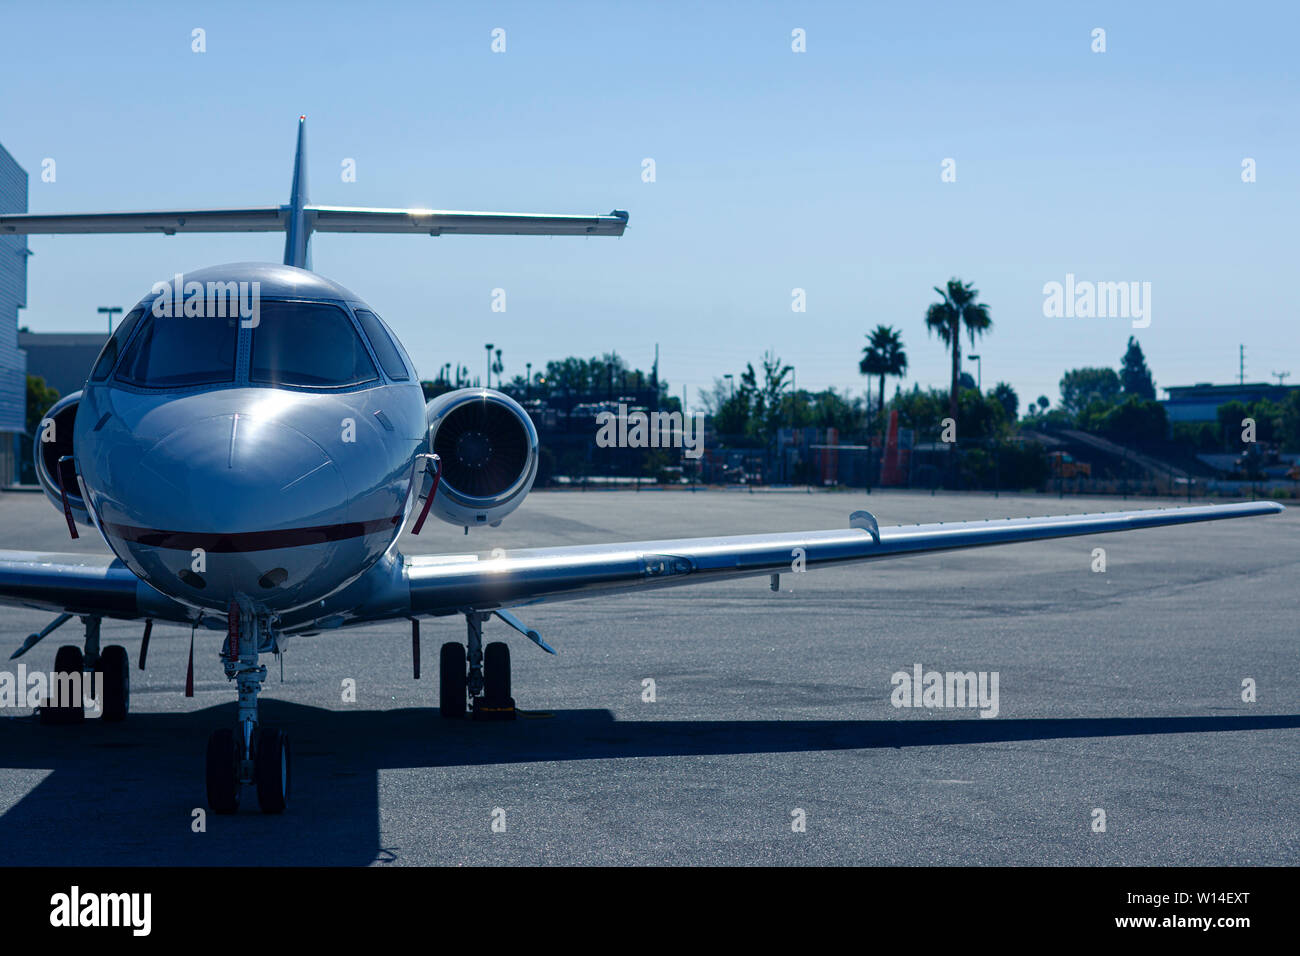 Luxury private jet is parked on an airfield at dusk Stock Photo